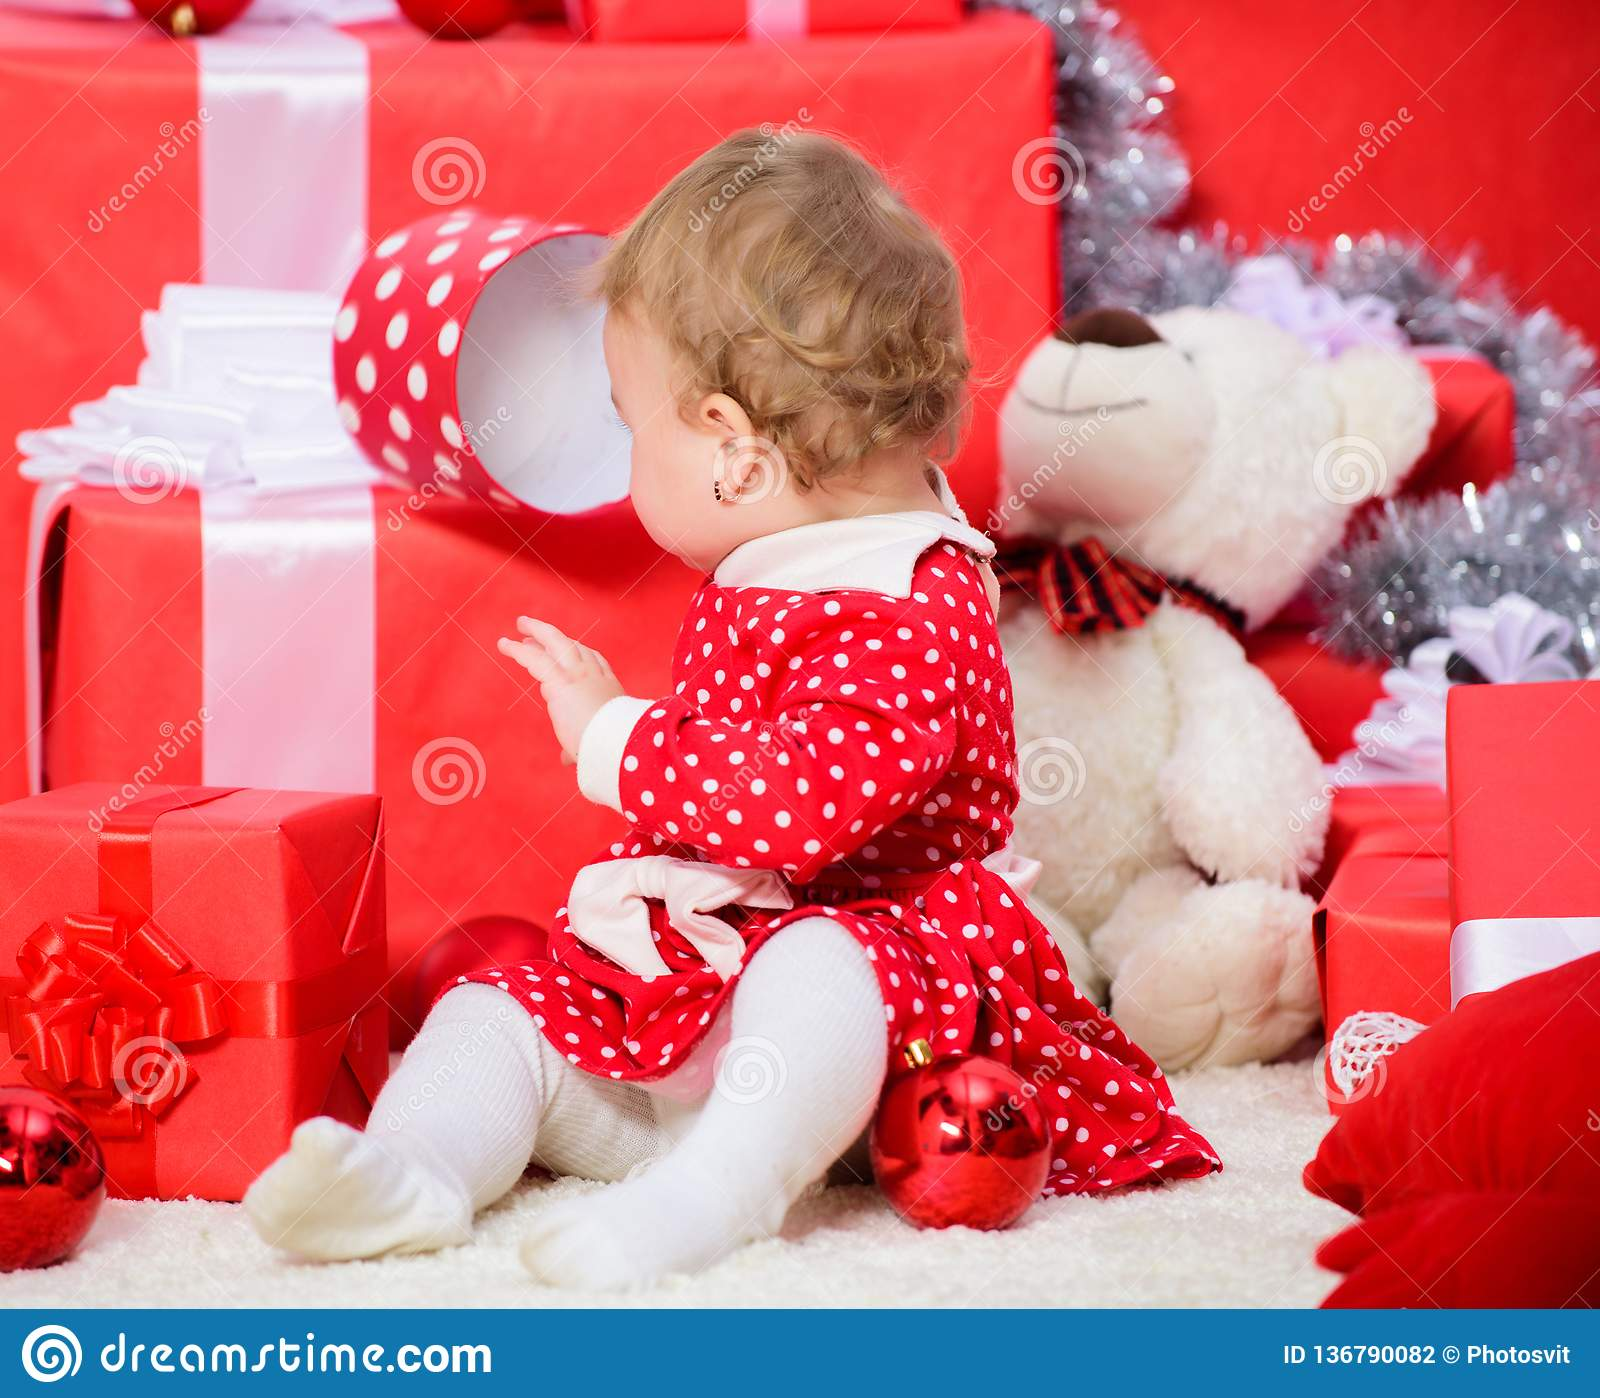 Christmas Ideas For Toddlers.Gifts For Child First Christmas Christmas Activities For